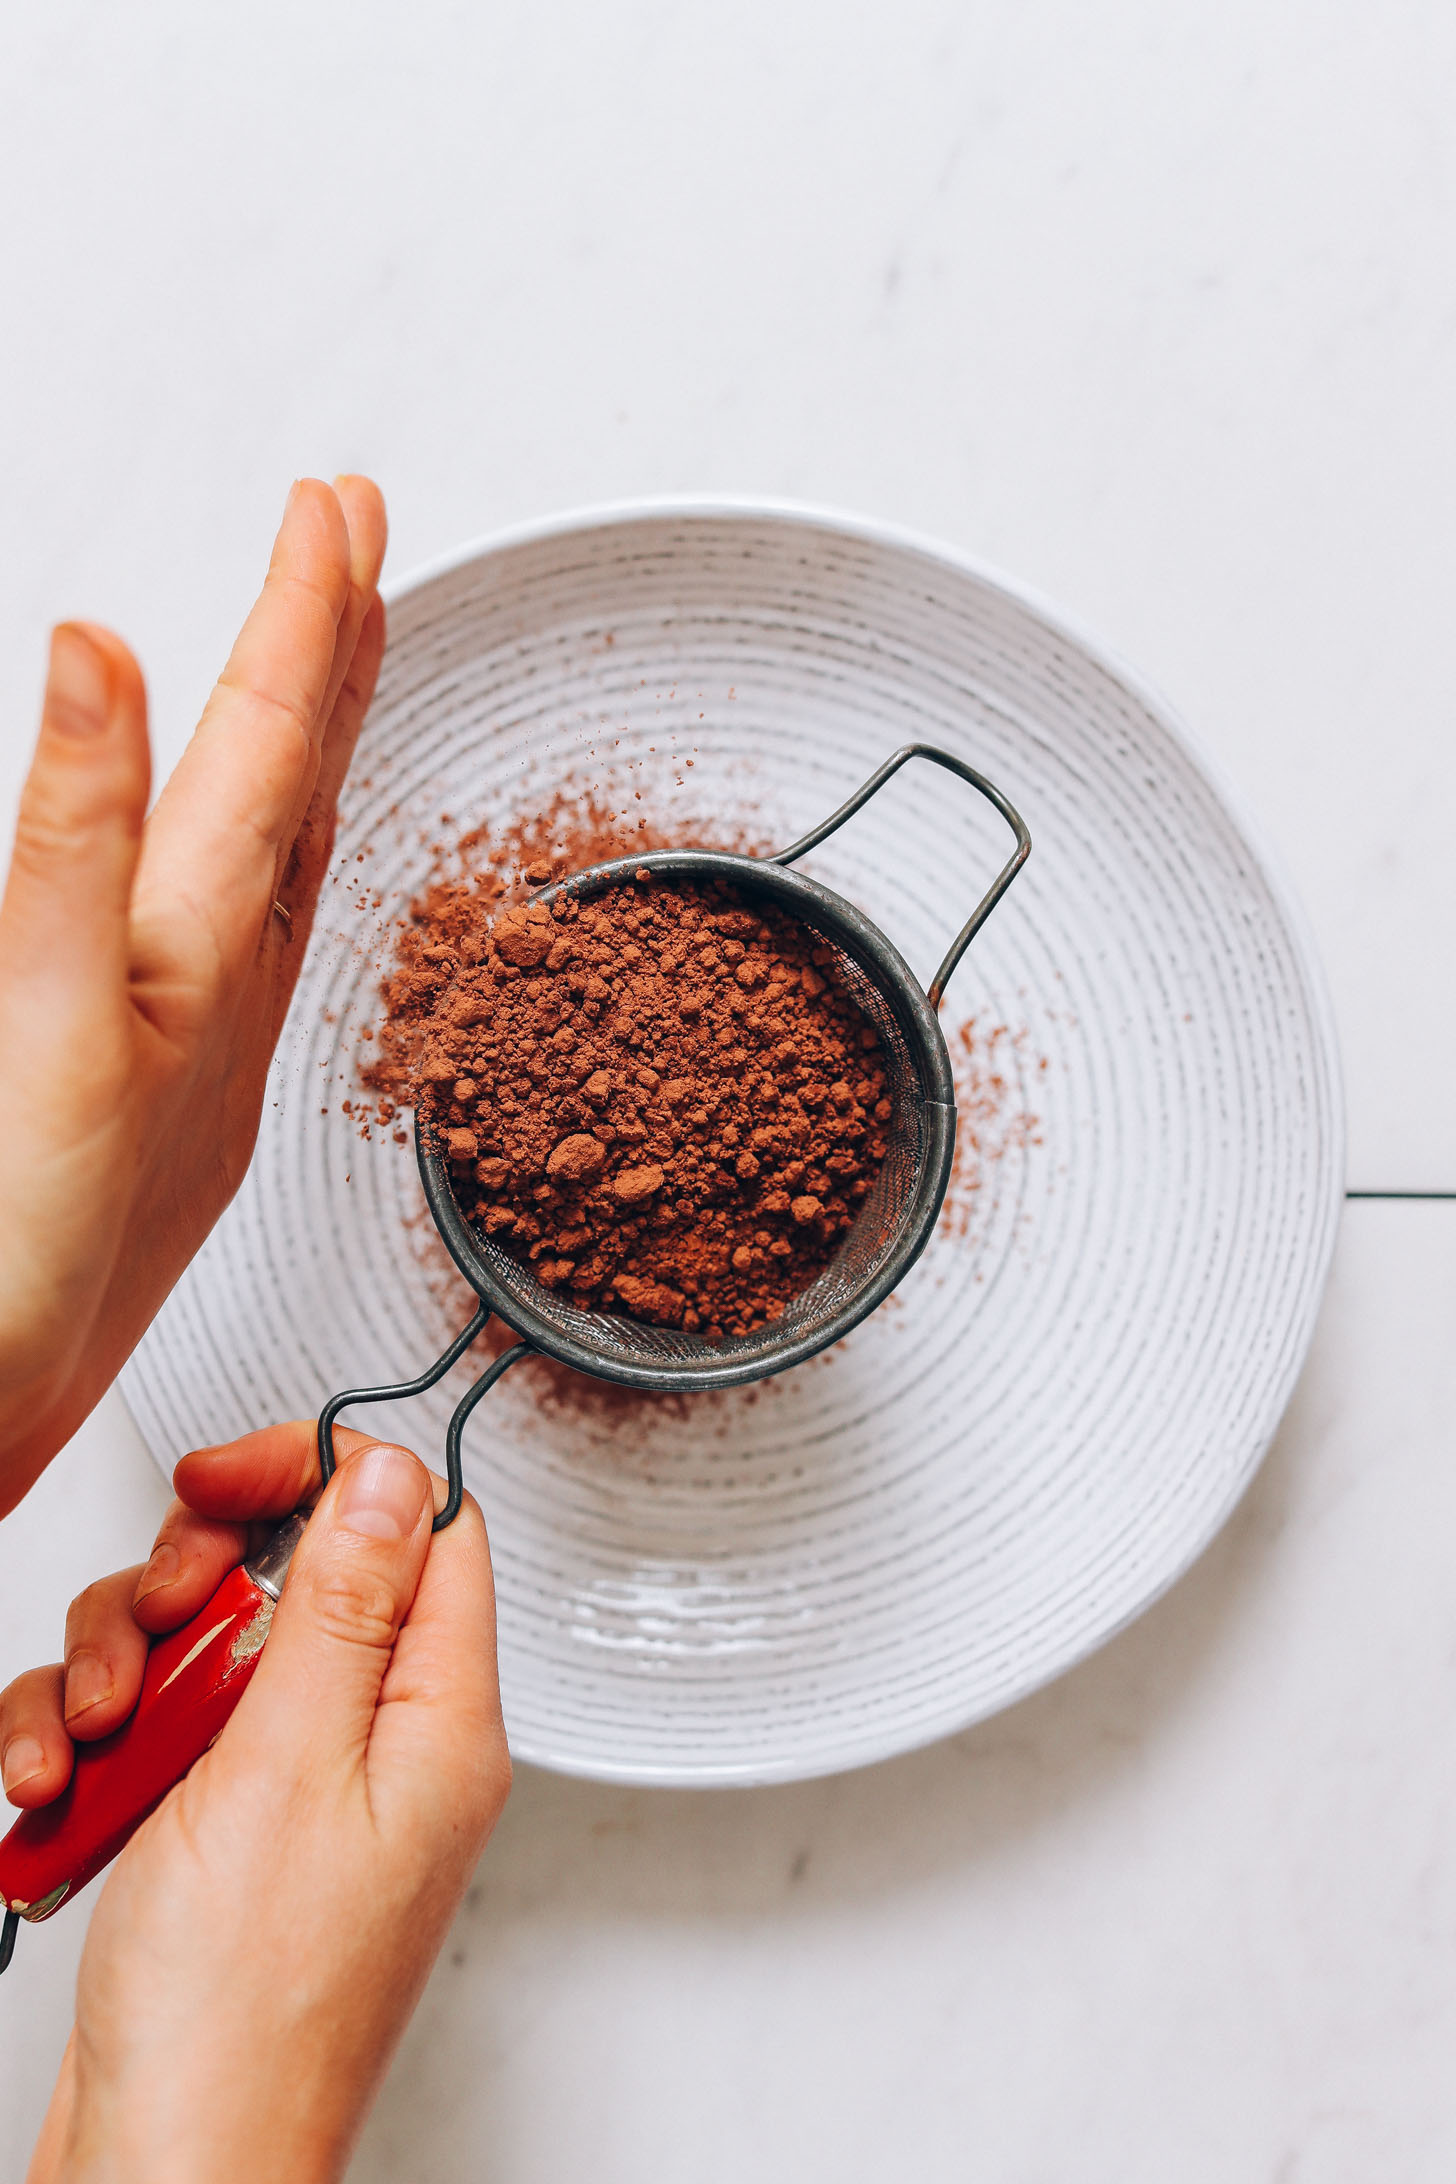 Using a fine mesh strainer to sift cacao powder into a bowl